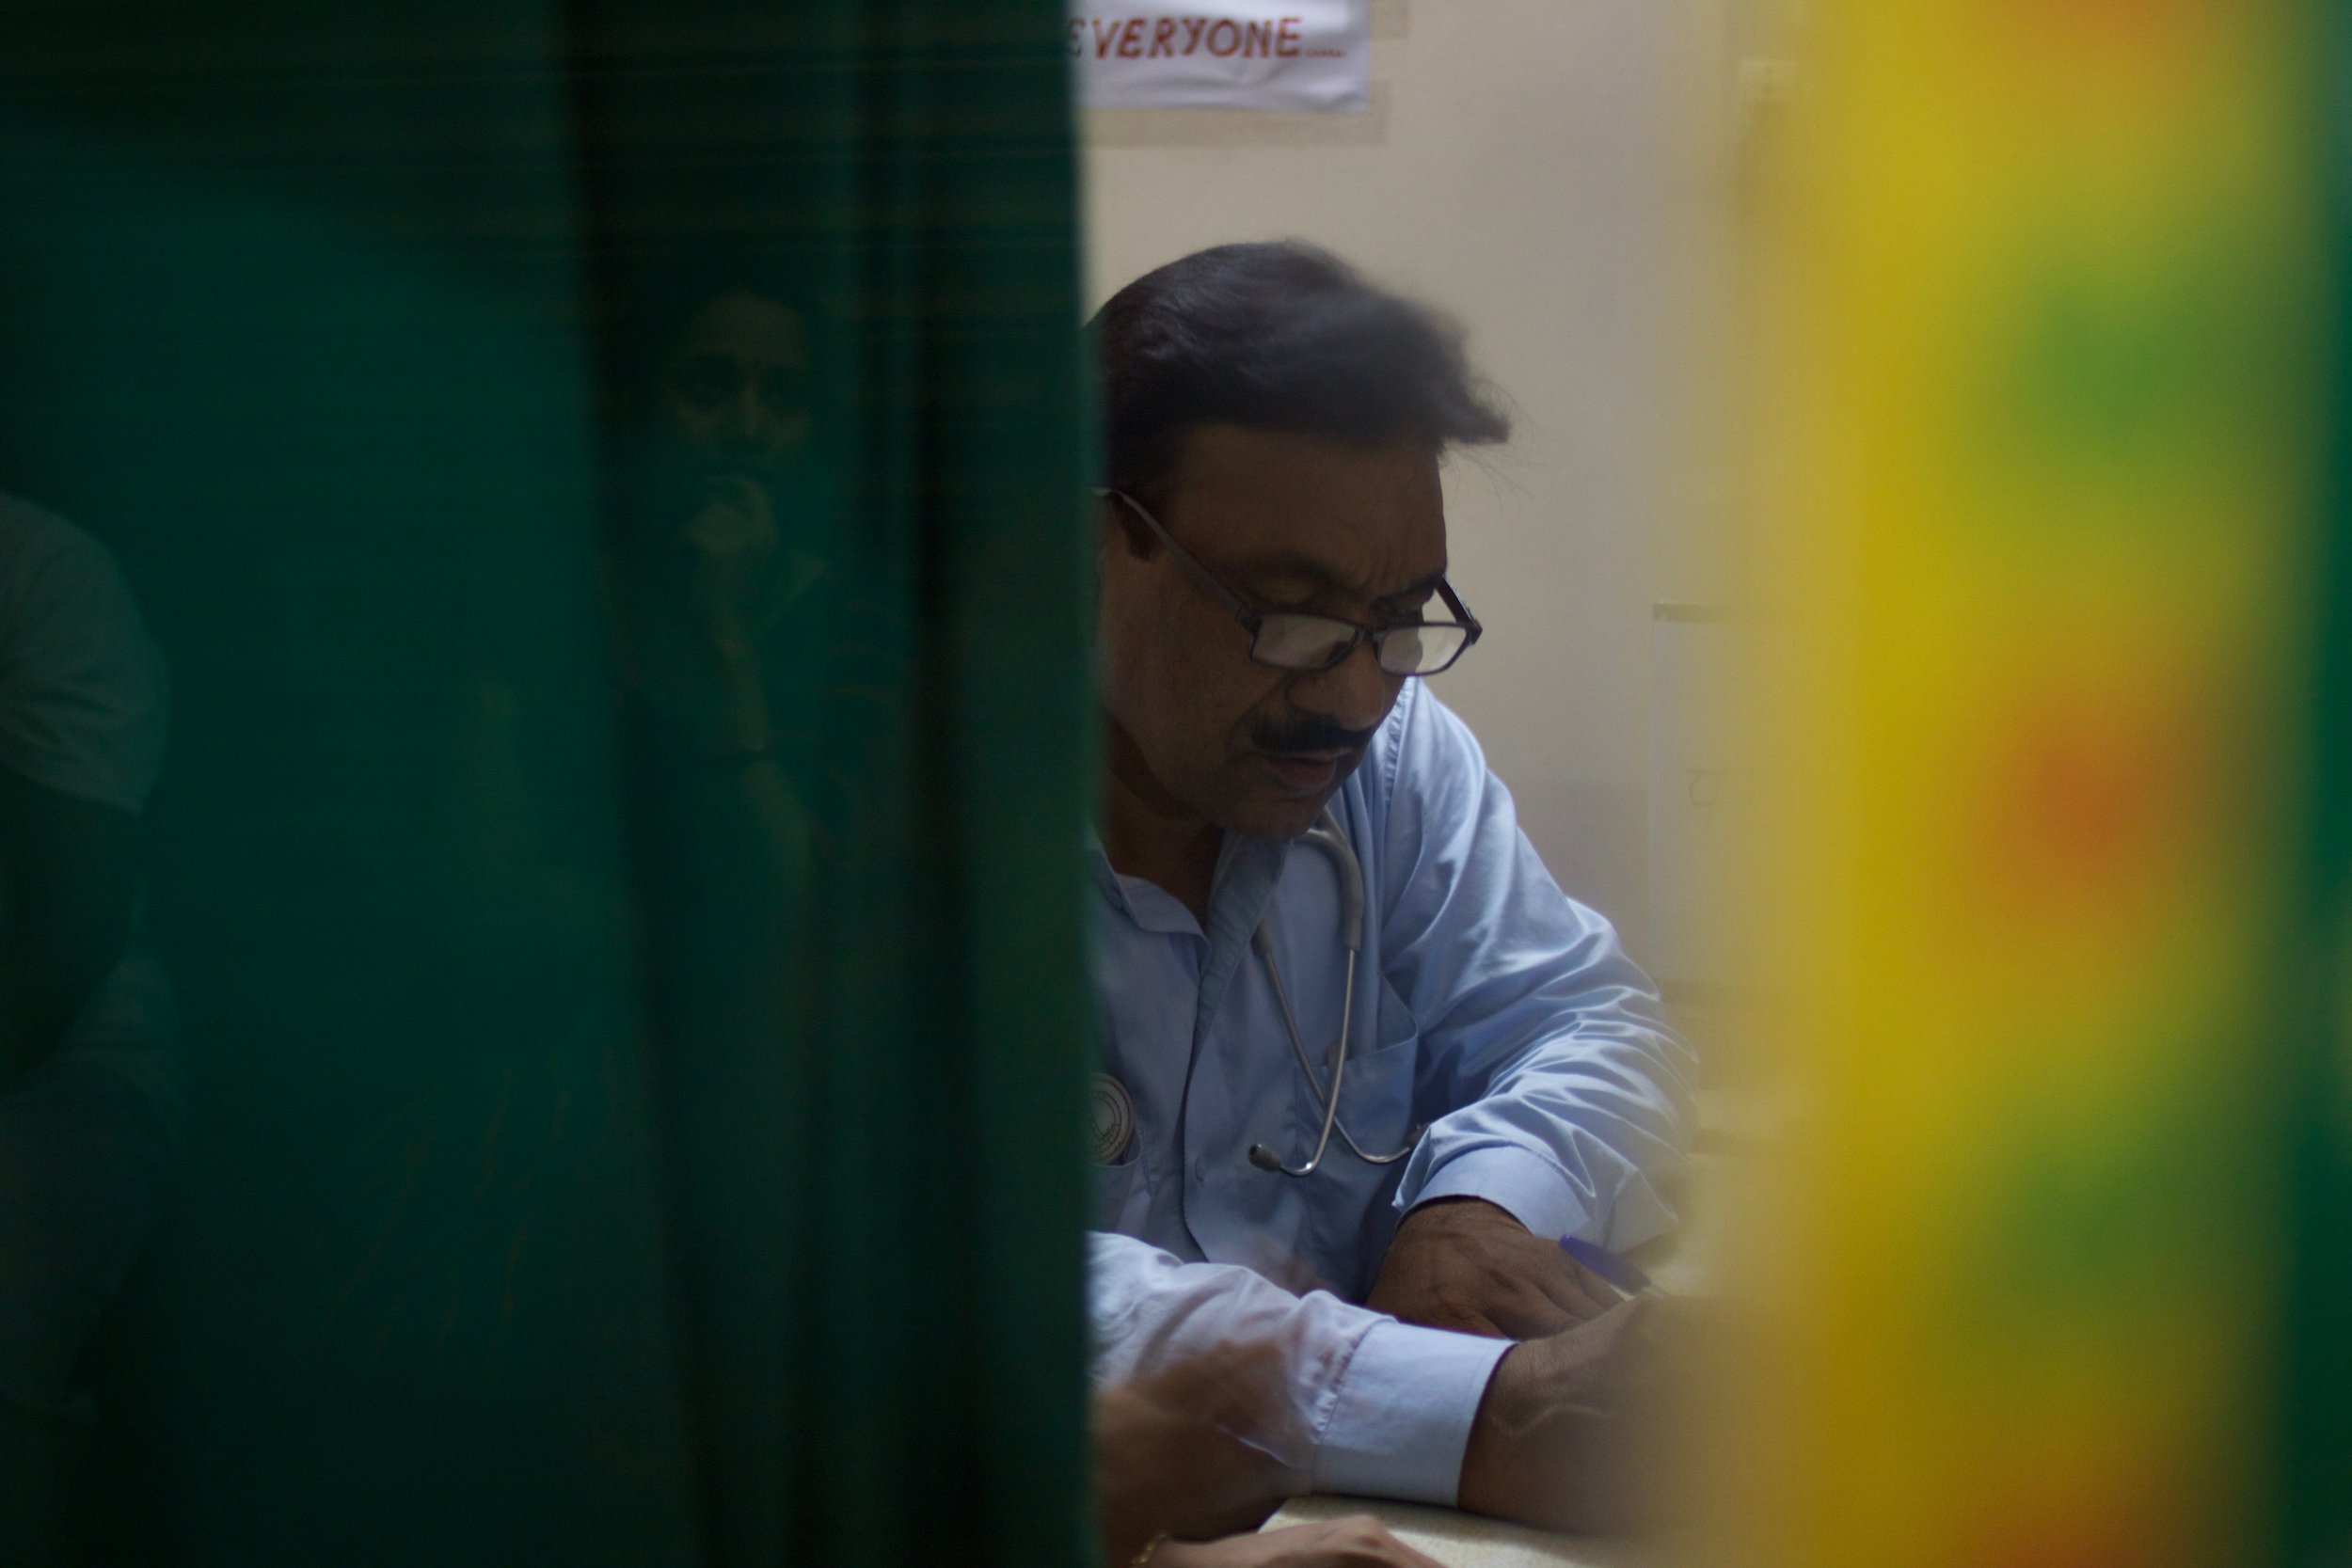 Dr. Rajesh Bhadoria has manned, maintained and decorated his one-doctor clinic the same way for the past 30 years.